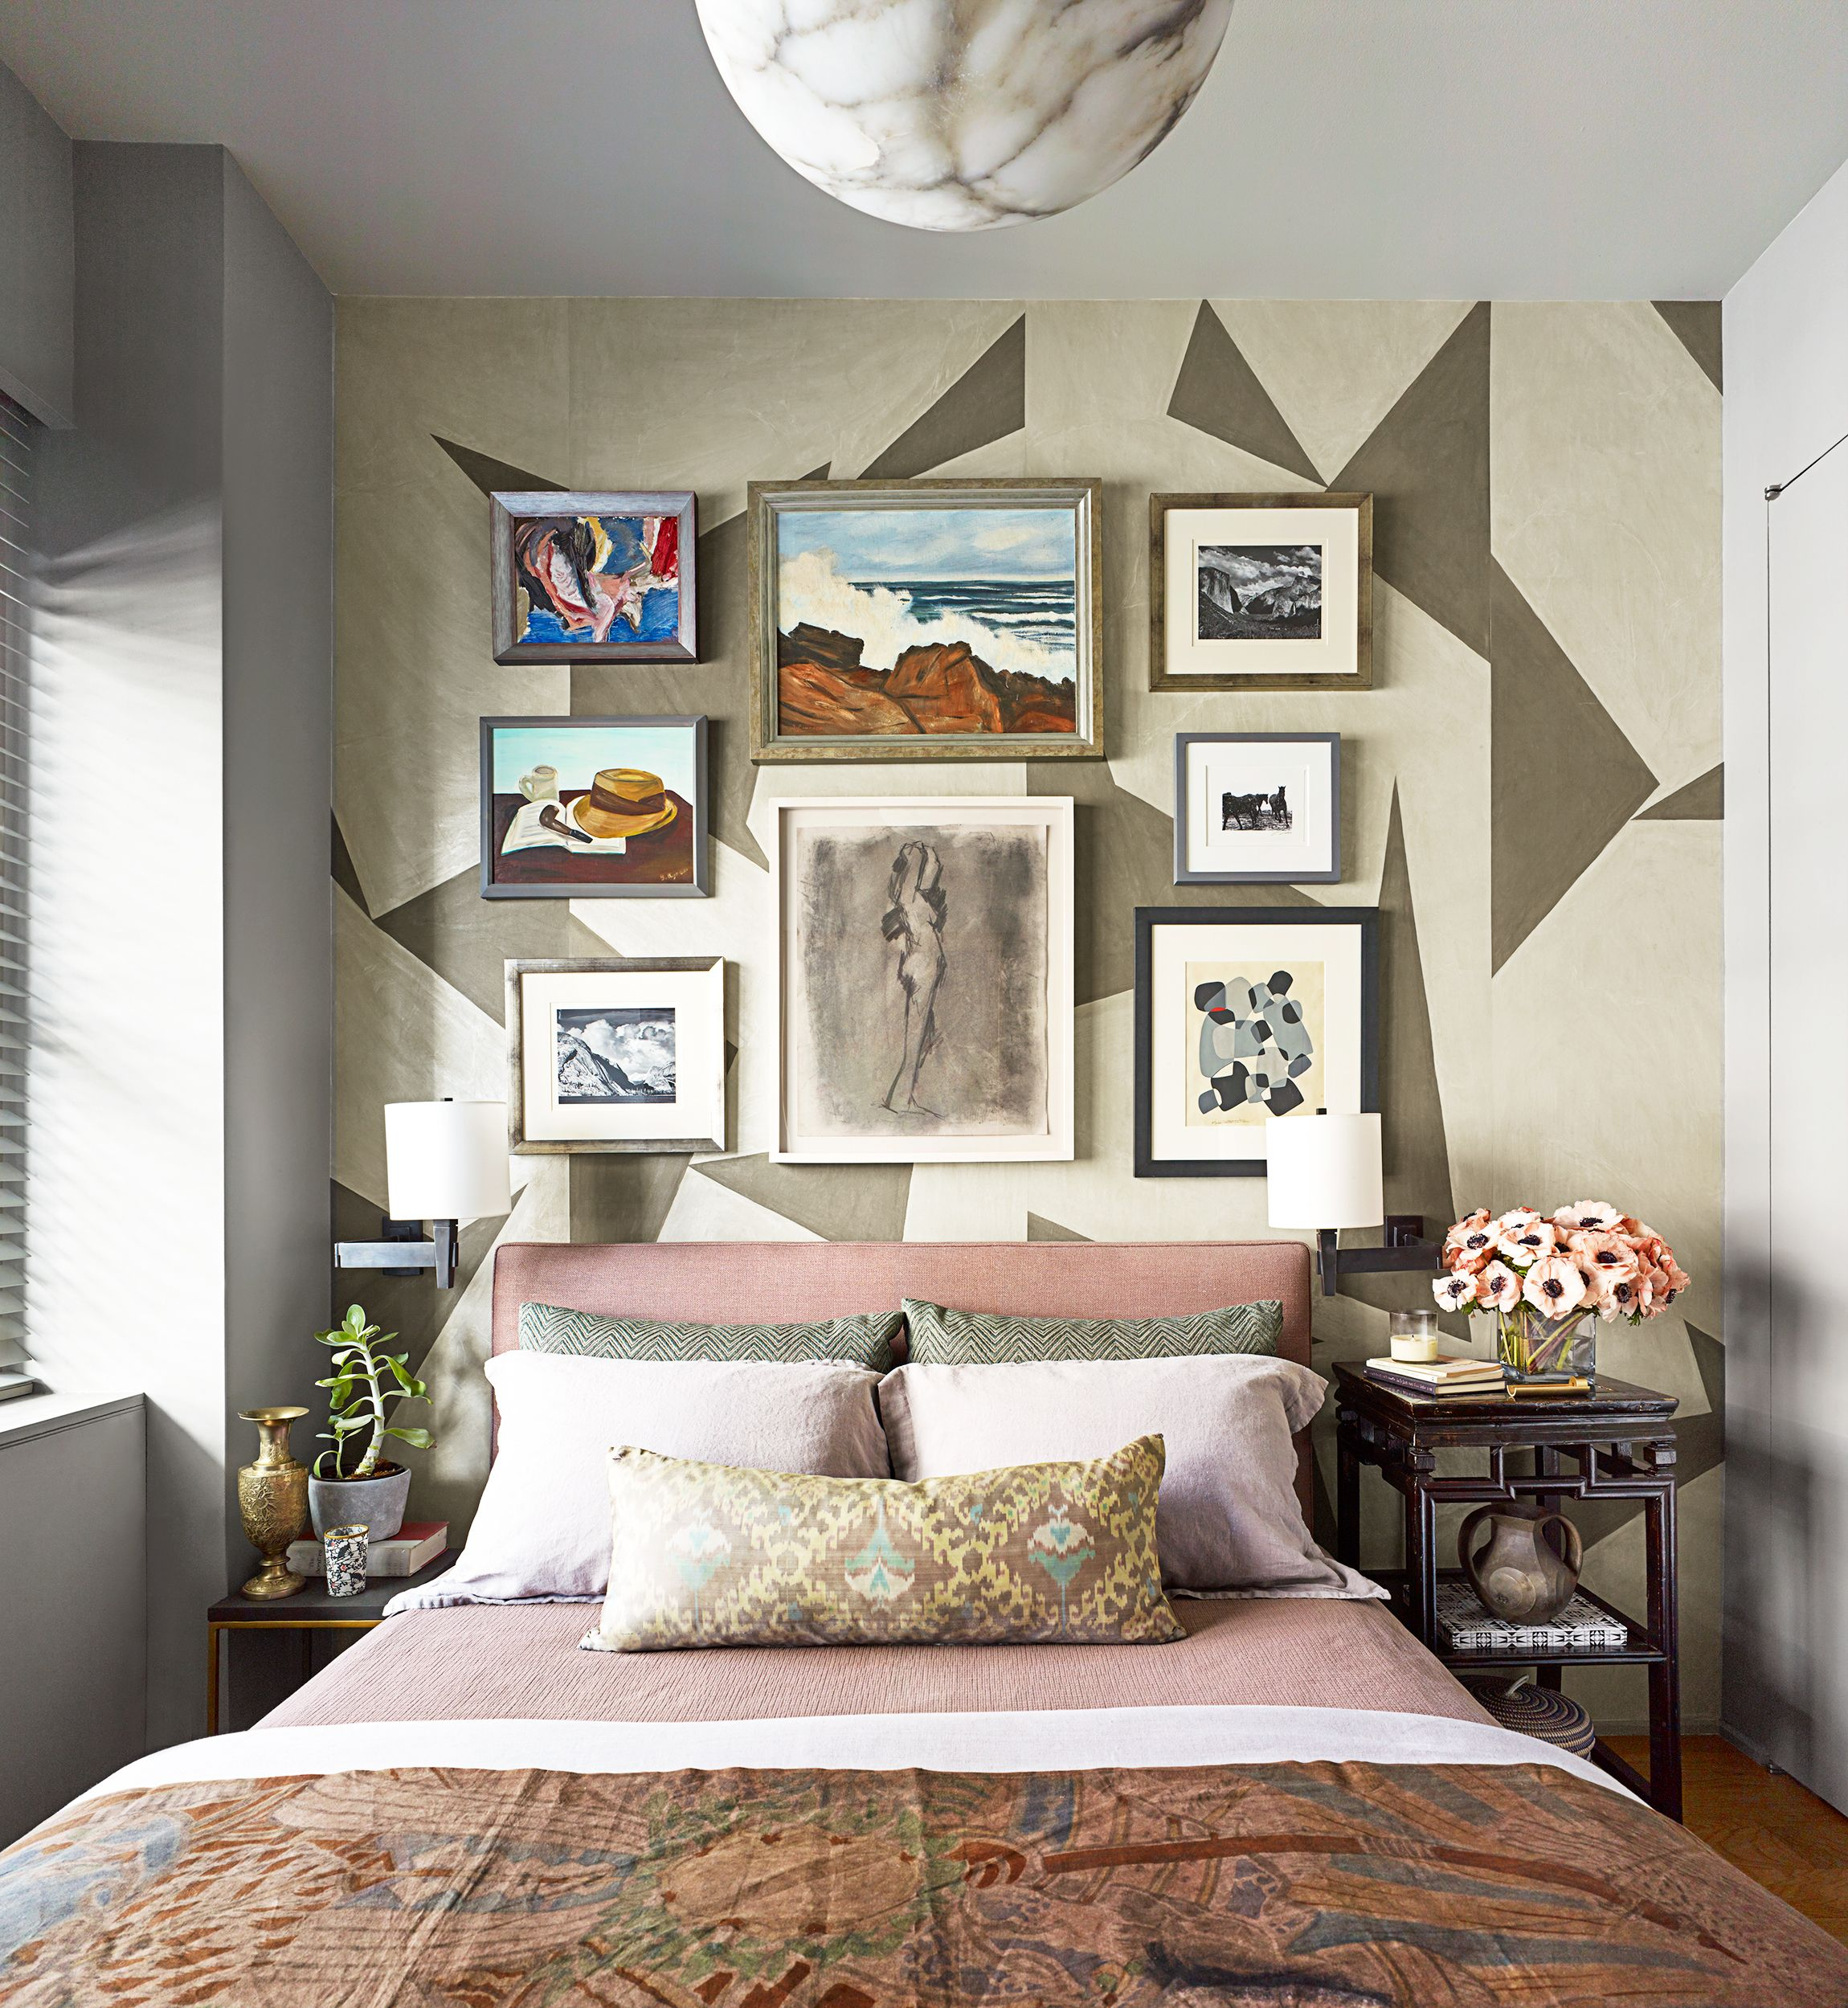 House Beautiful & 25 Small Bedroom Design Ideas - How to Decorate a Small Bedroom